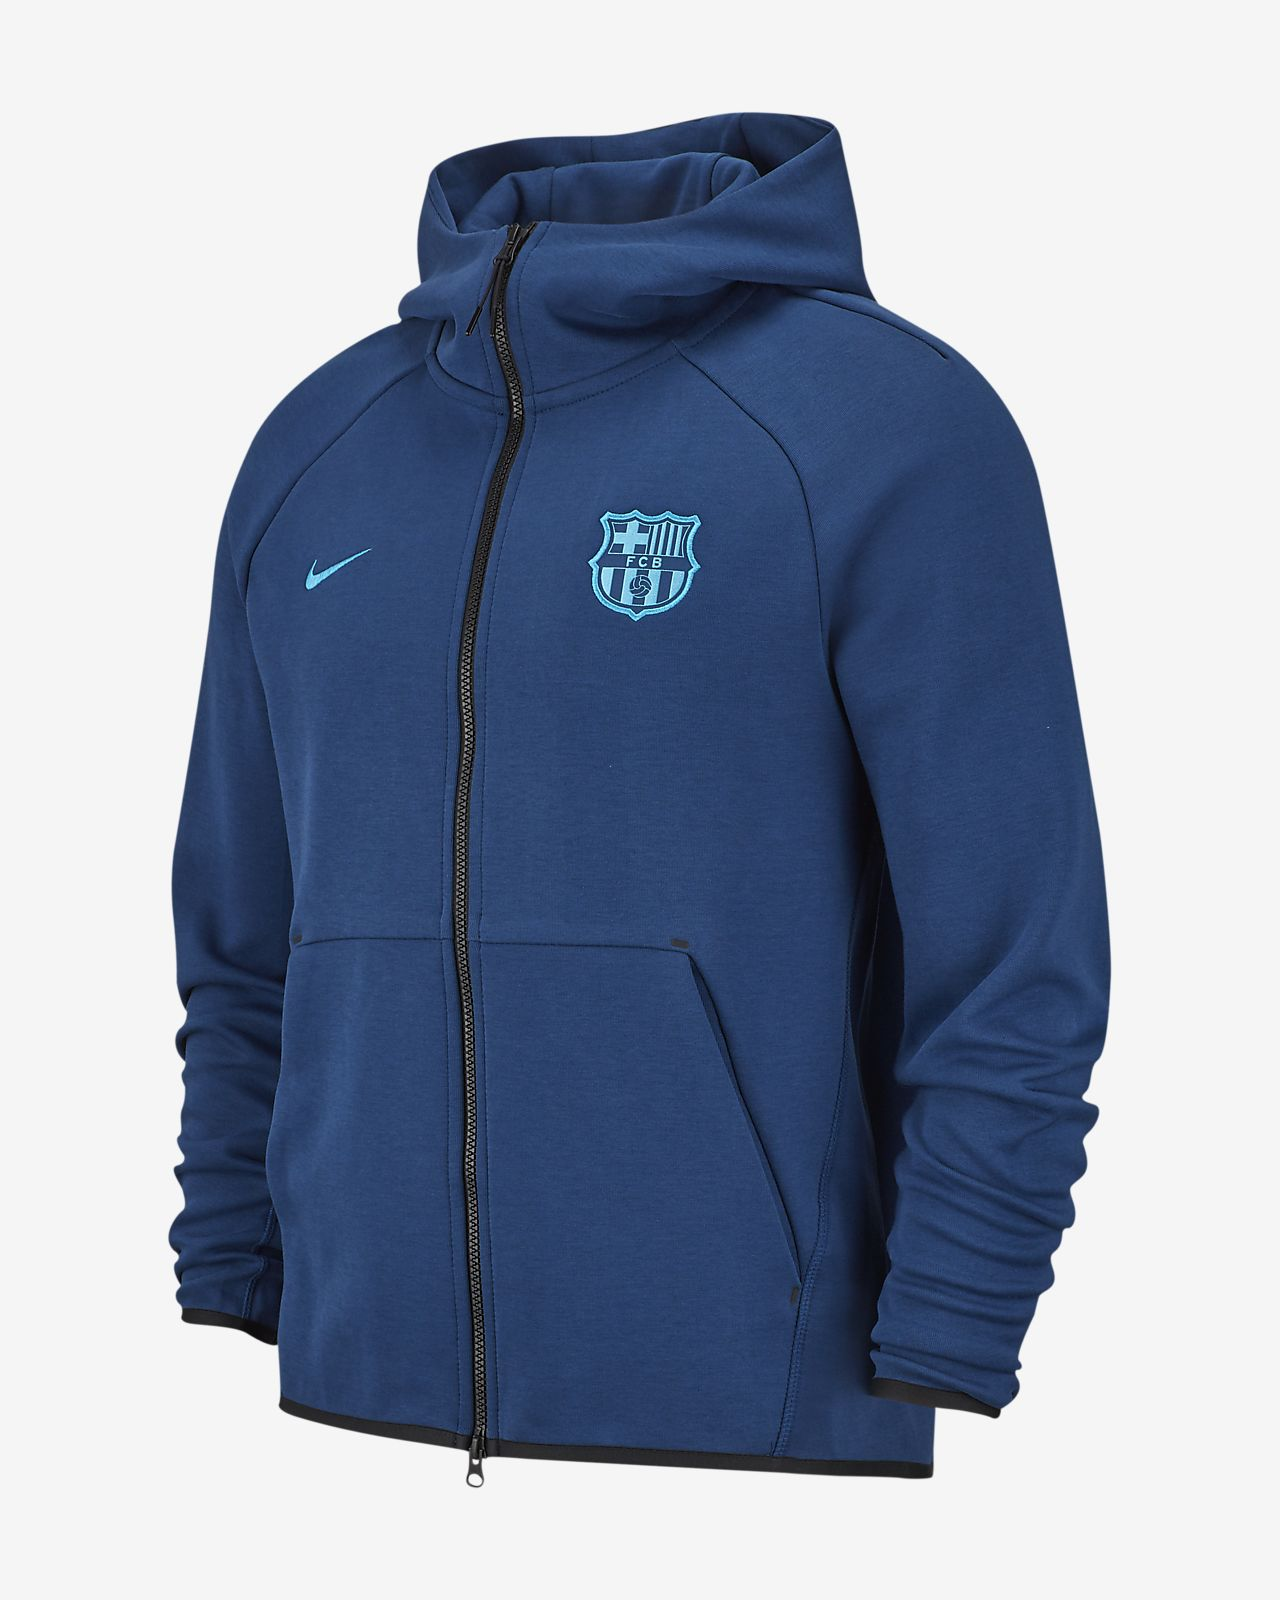 bb6abb7f8 FC Barcelona Tech Fleece Men s Hoodie. Nike.com IE